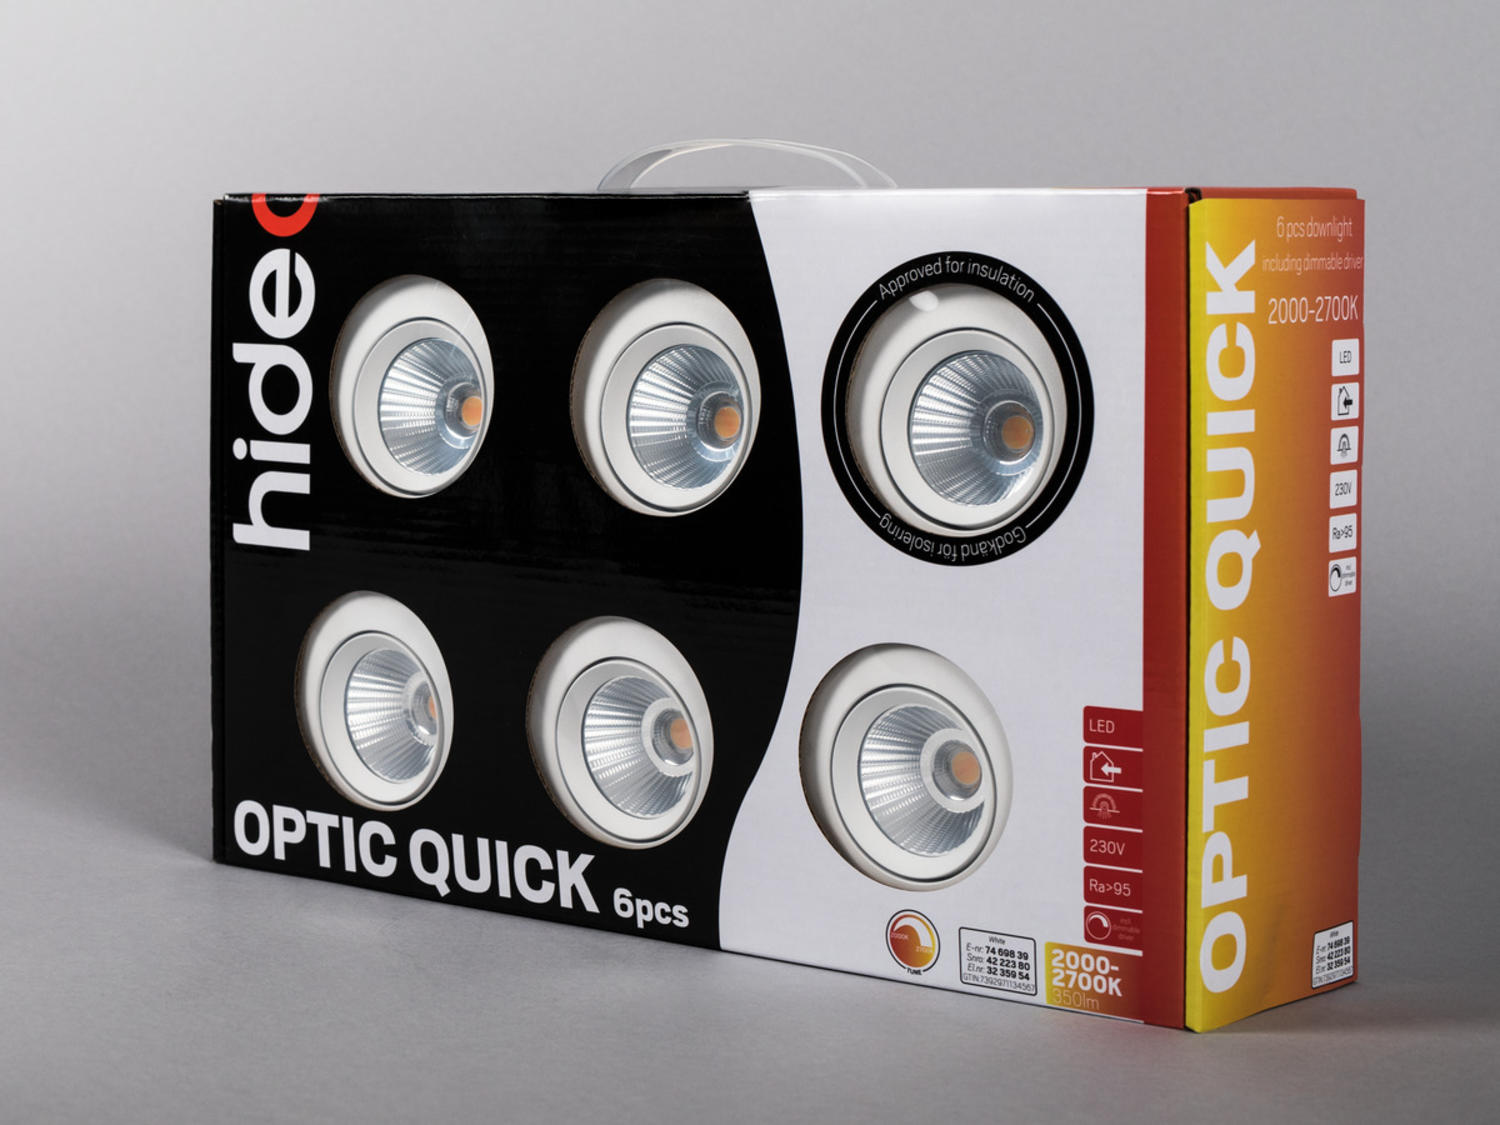 Optic Quick ISO 6-pakk